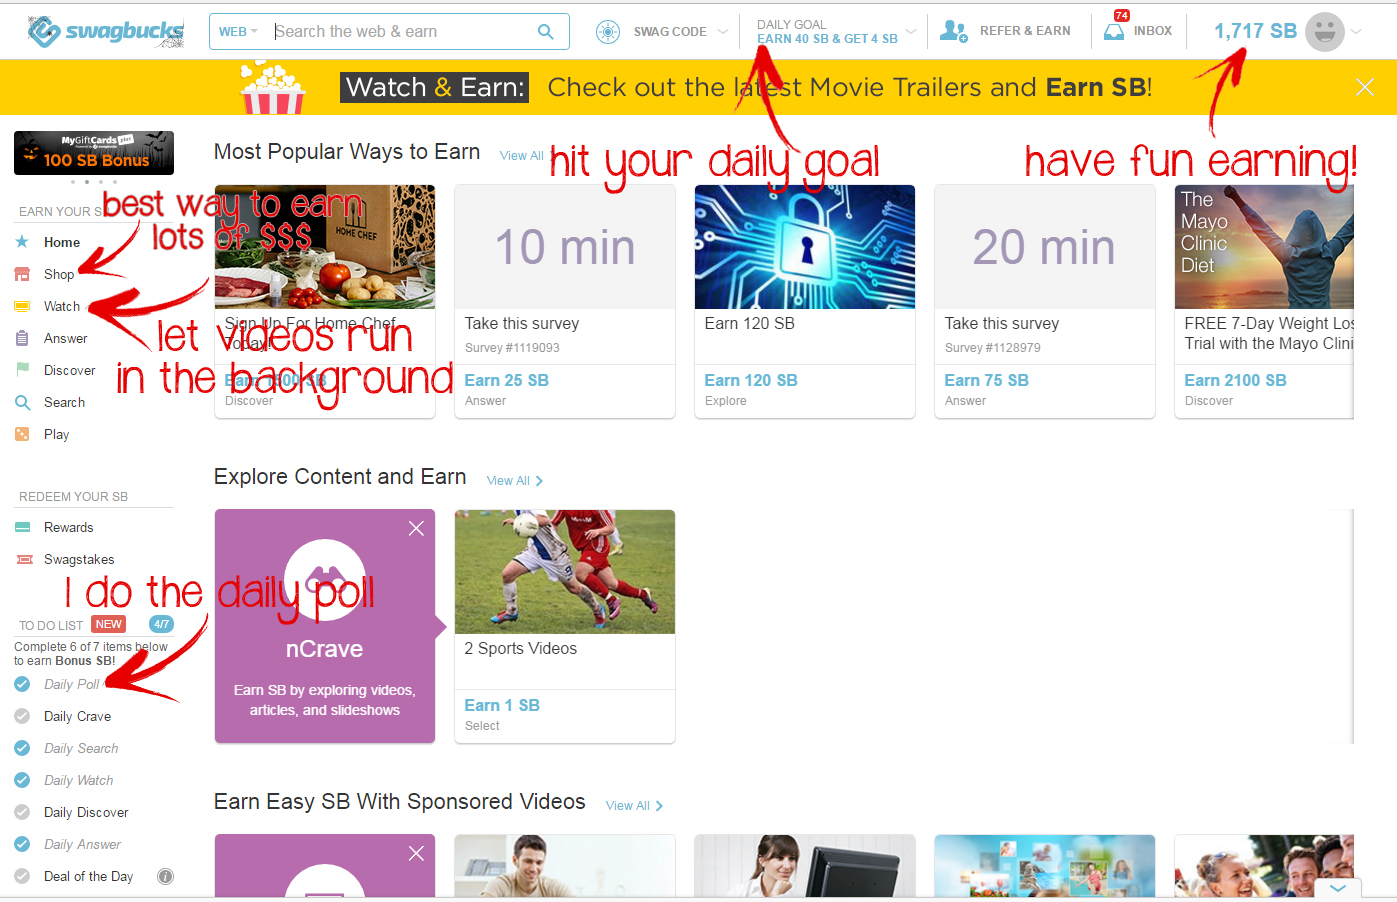 swagbucks_screenshot